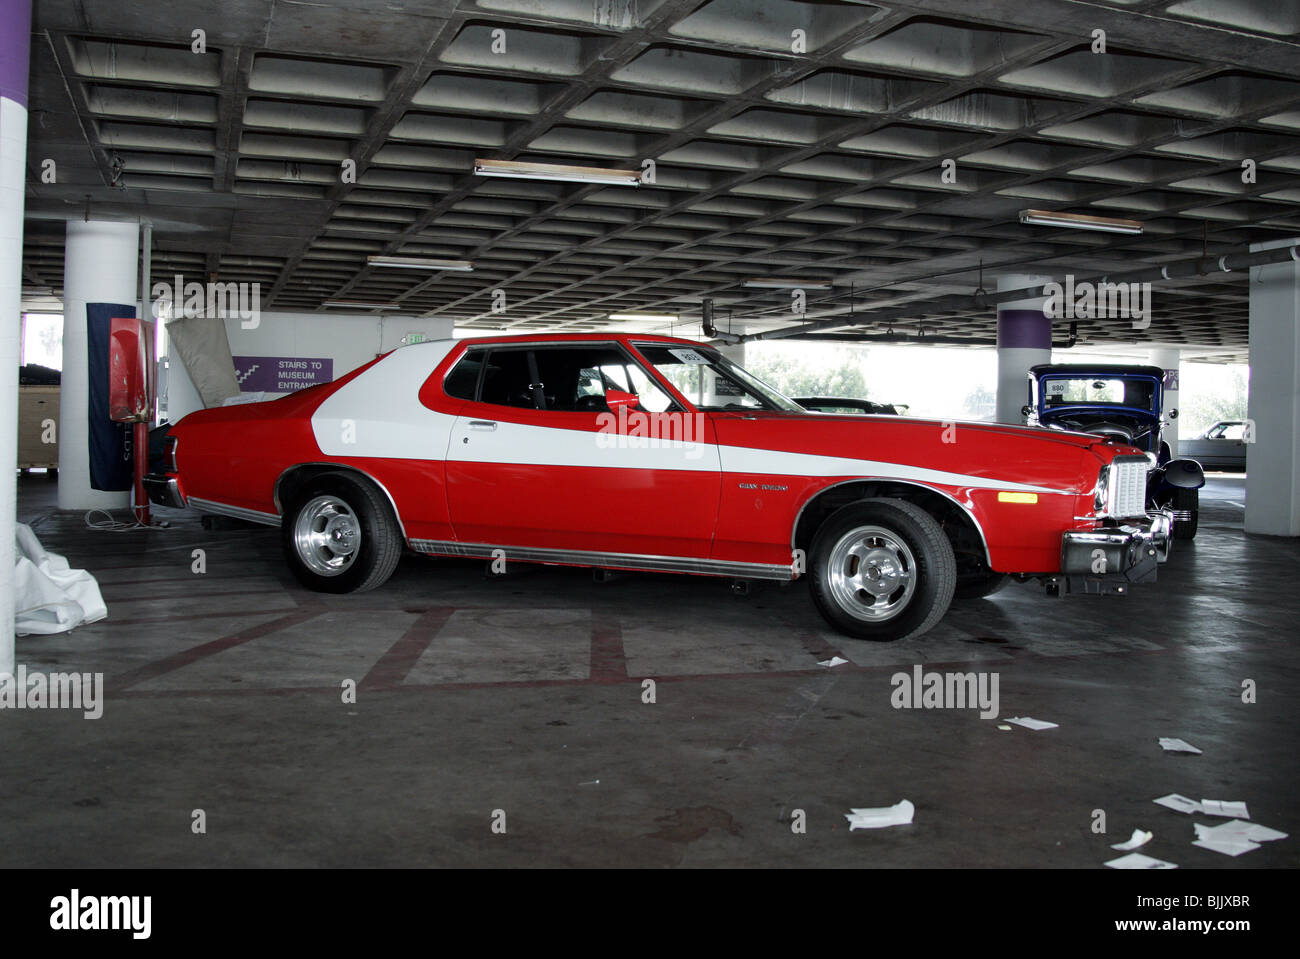 Starsky And Hutch Tv Stock Photos 1964 Ford Grand Torino 1975 Gran George Barris Collection Of Ku Petersen Museum Los